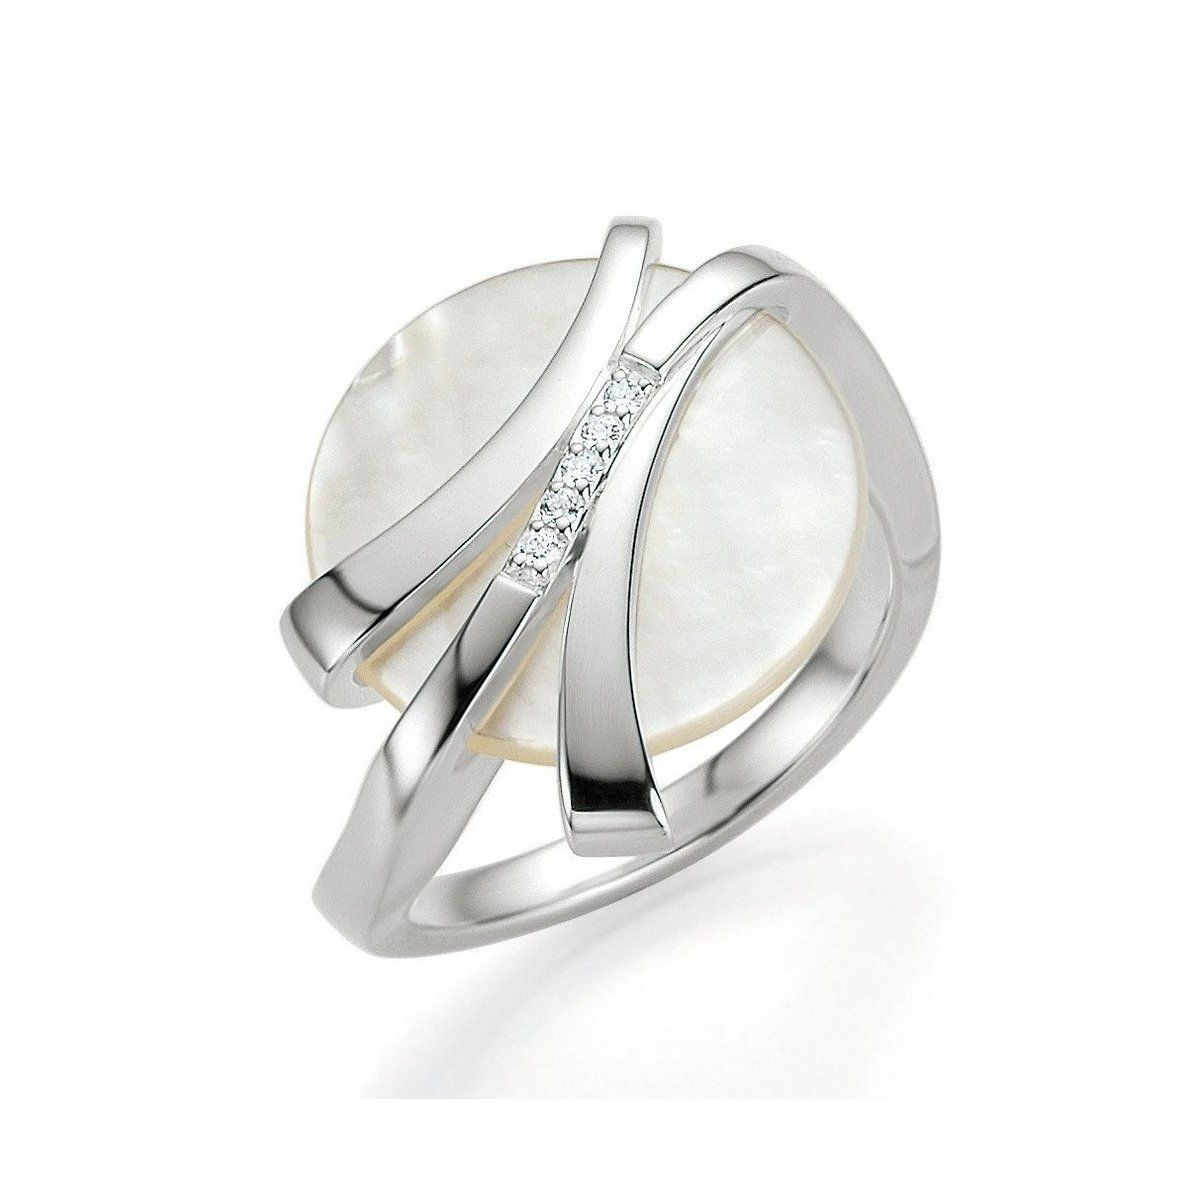 62d19b25c9562 Sterling Silver Mother of Pearl and Brilliant Diamond Ring - 41 ...